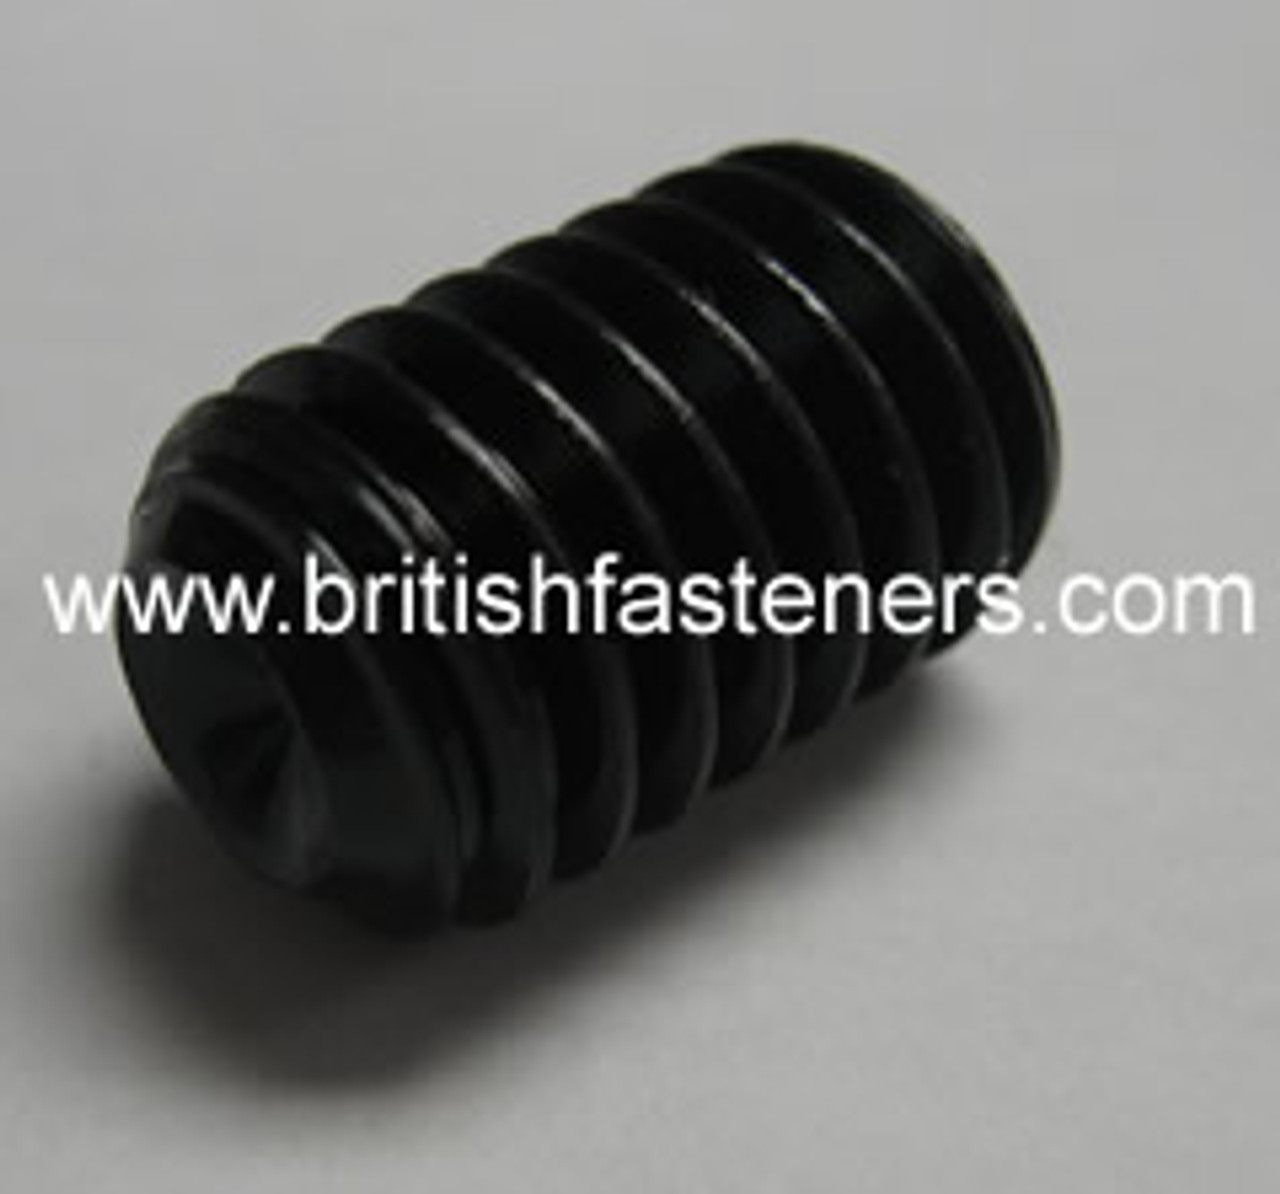 "GRUB SCREW BSF 3/8 x 1"" - (6125)"